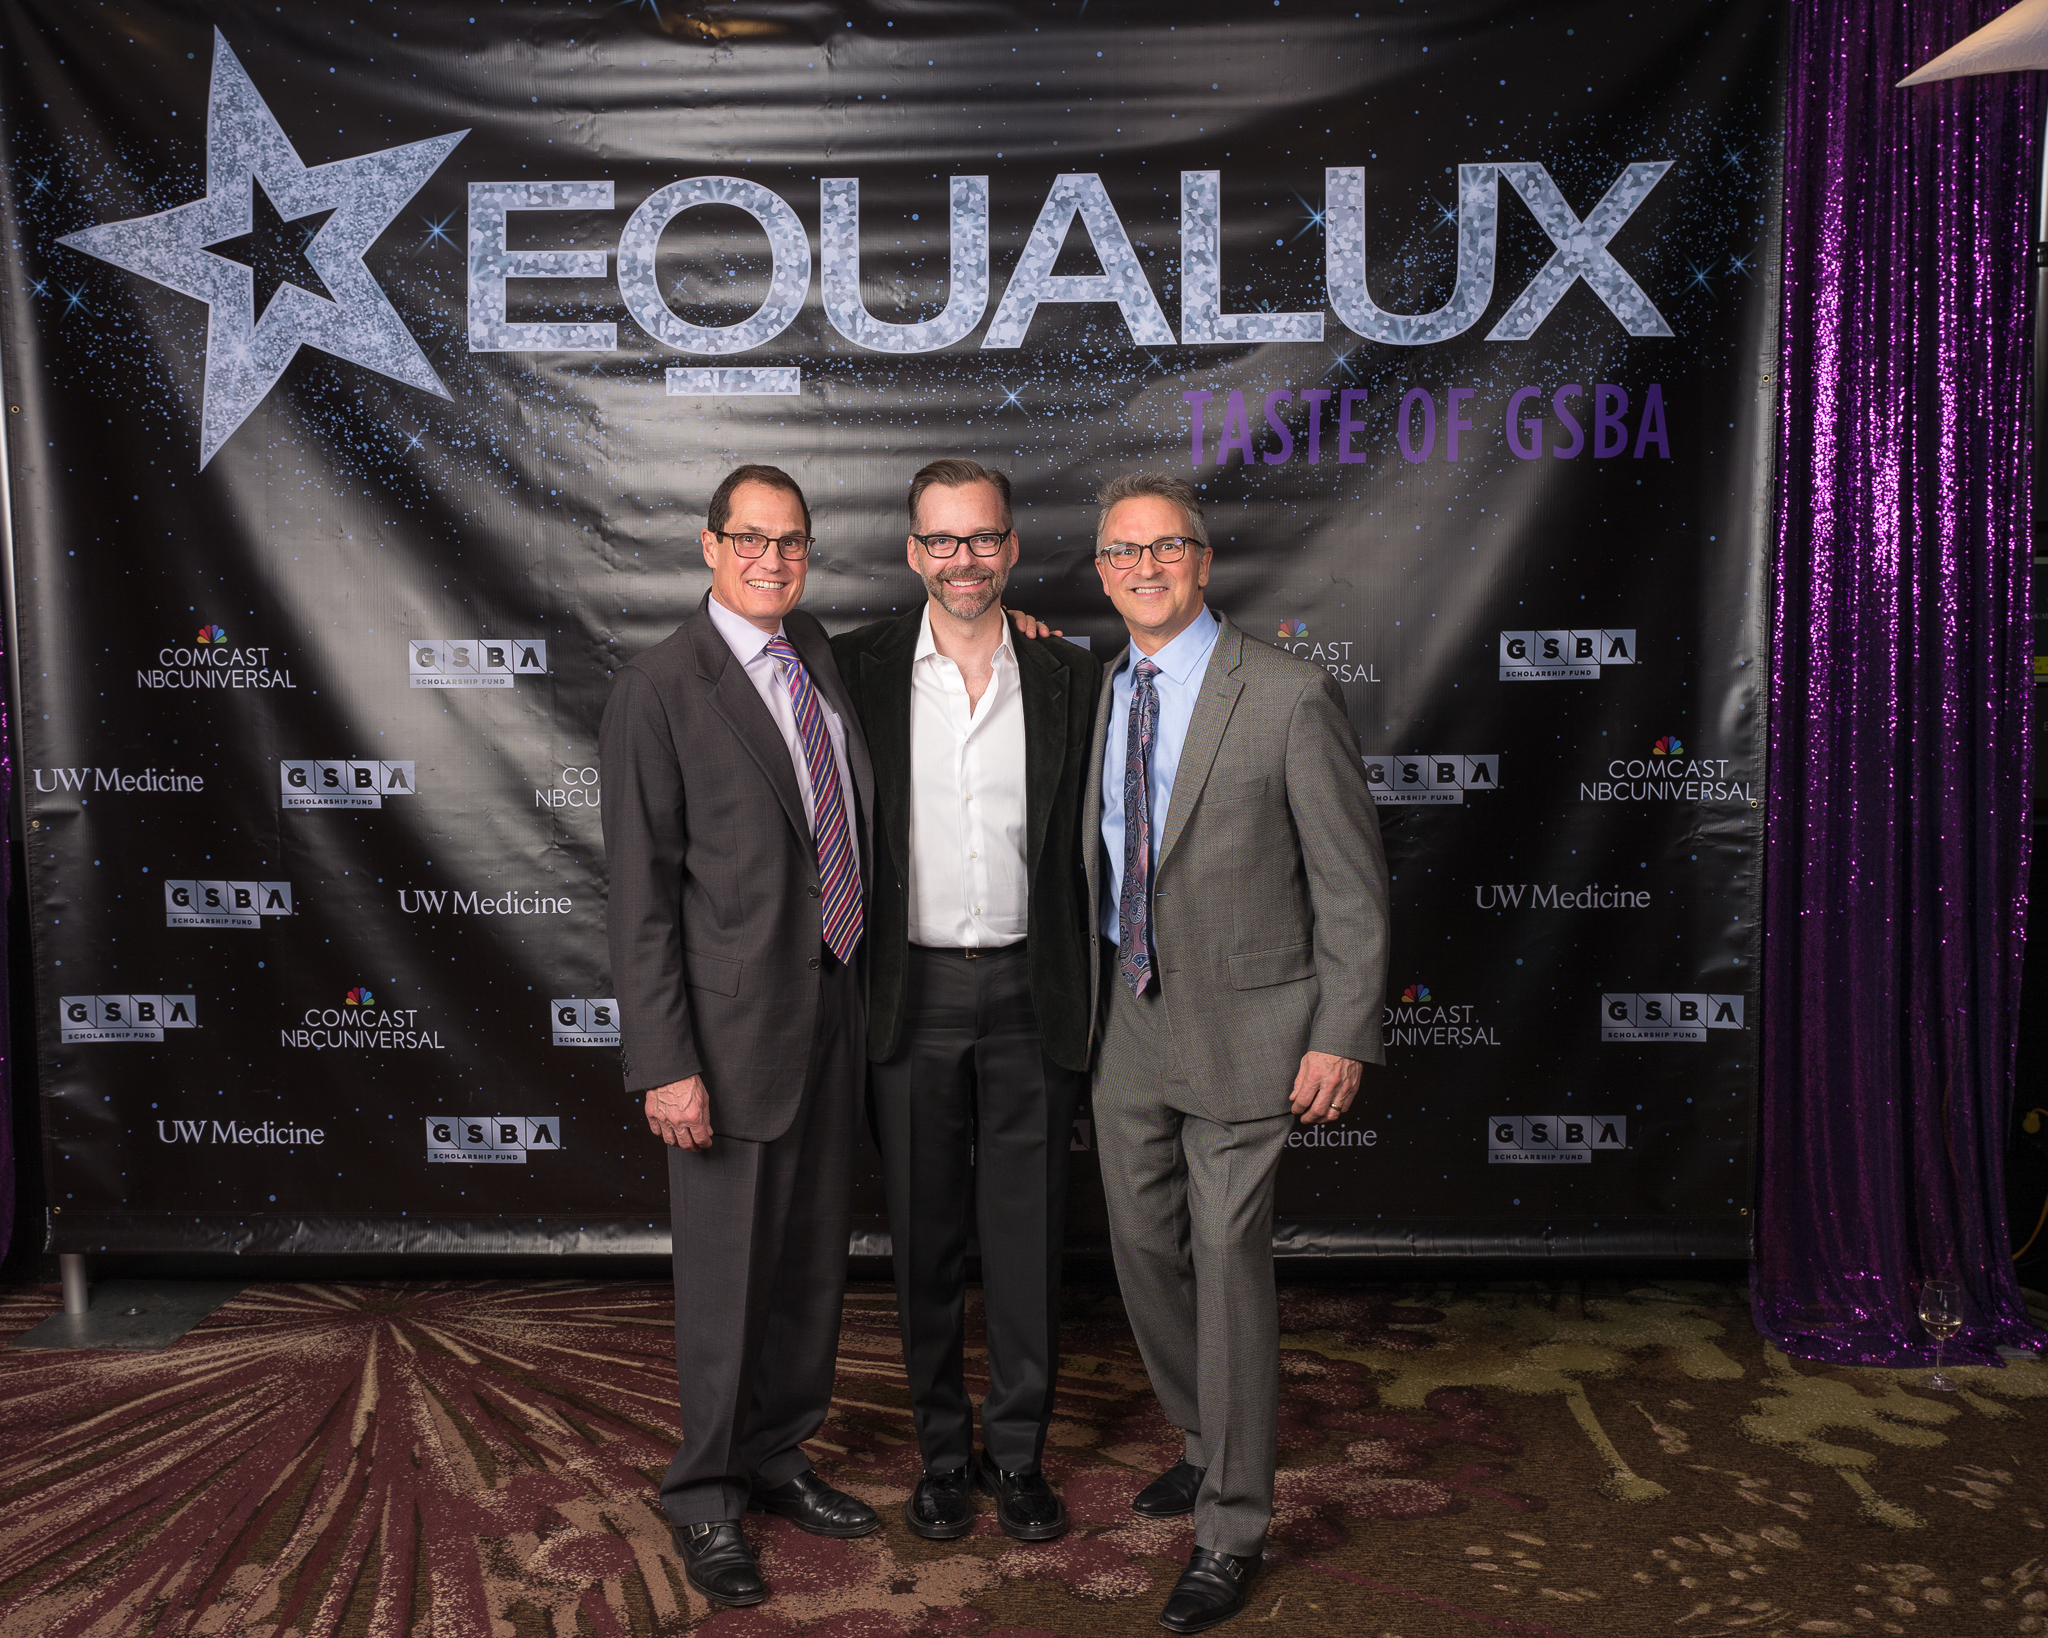 111718_GSBA EQUALUX at The Westin Seattle (Credit- Nate Gowdy)-177.jpg